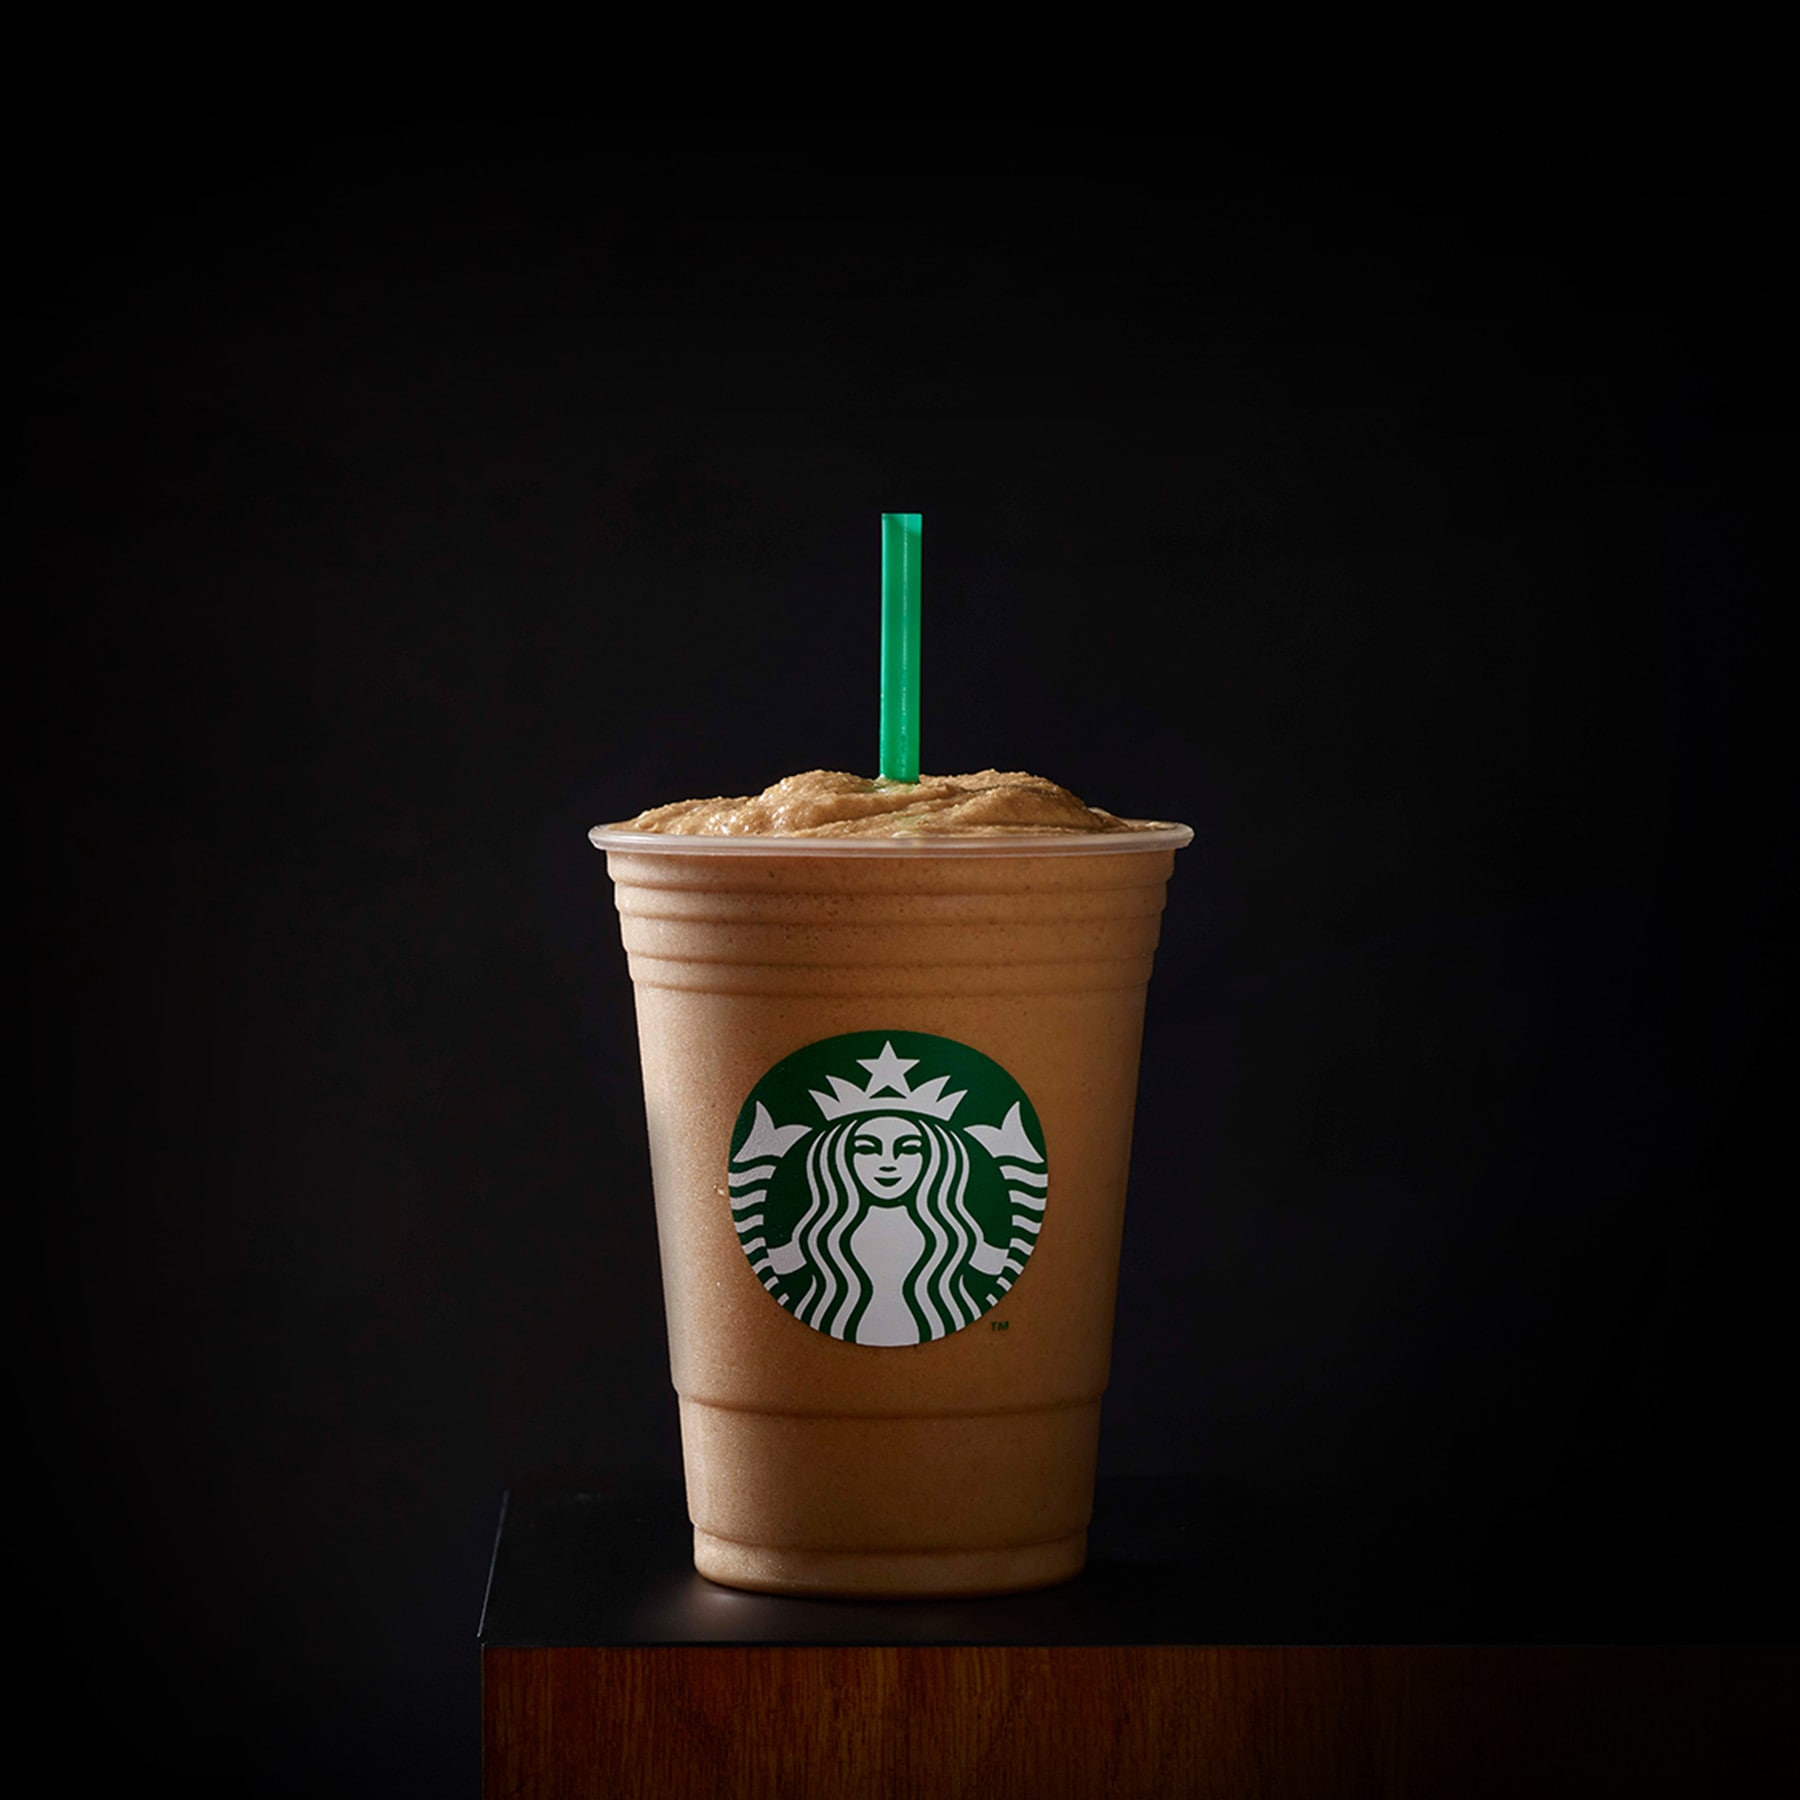 Espresso Frappuccino 174 Blended Coffee Starbucks Coffee